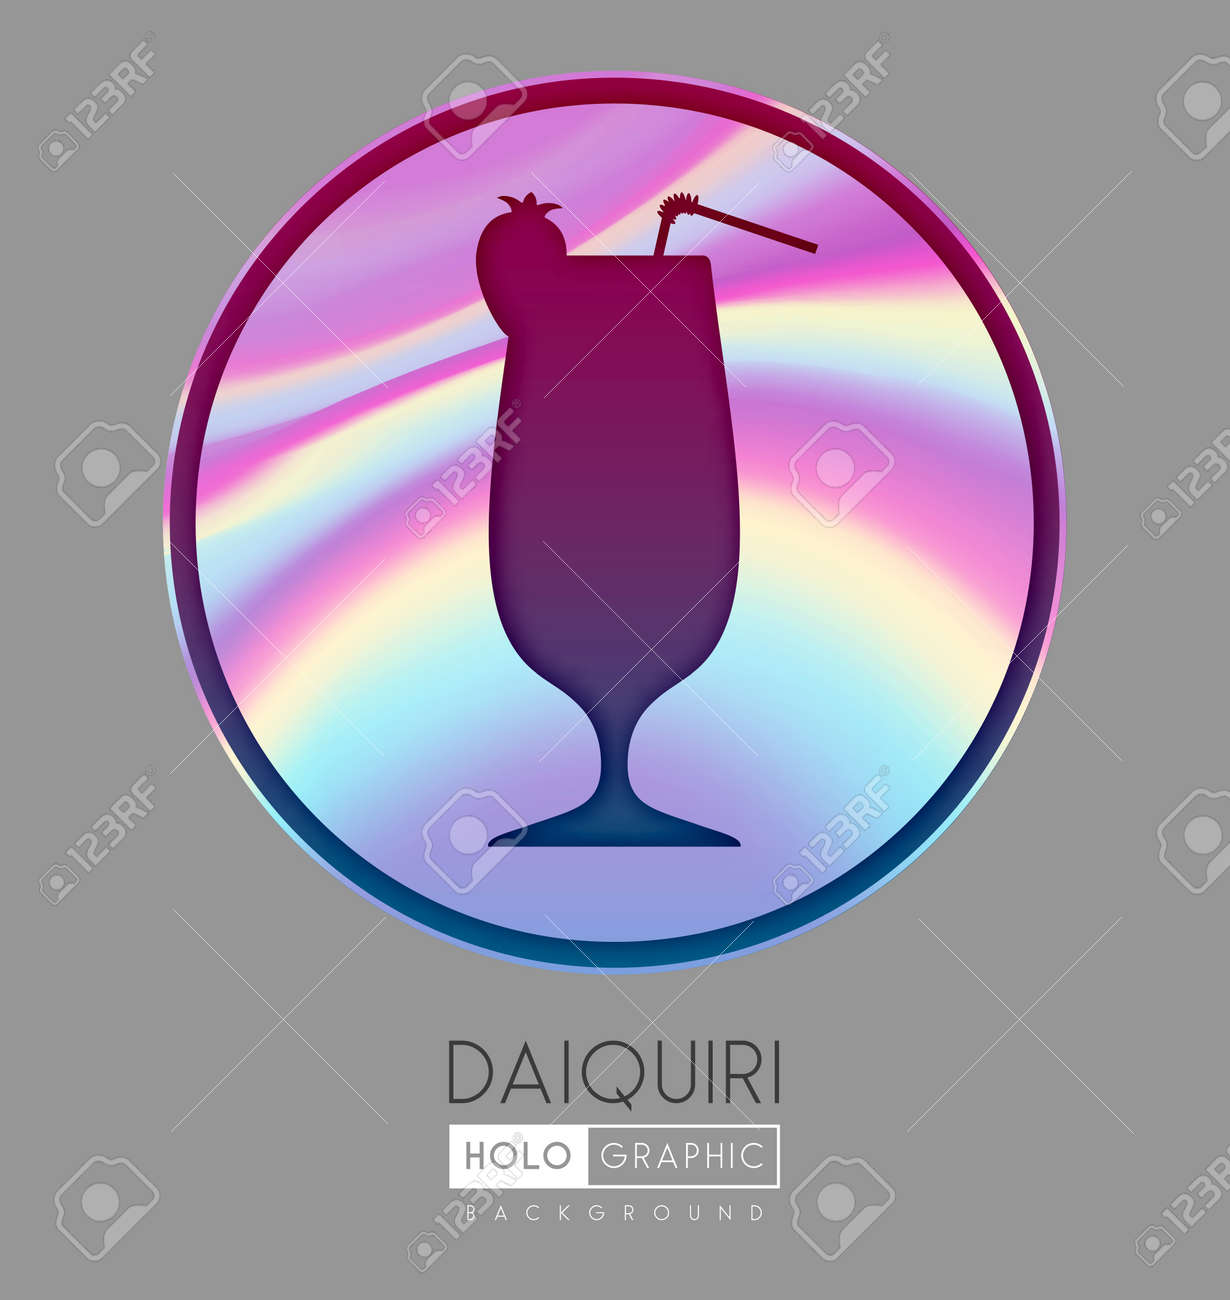 Cocktail silhouette on abstract holographic background. Daiquiri cocktail holographic icon - 169983527